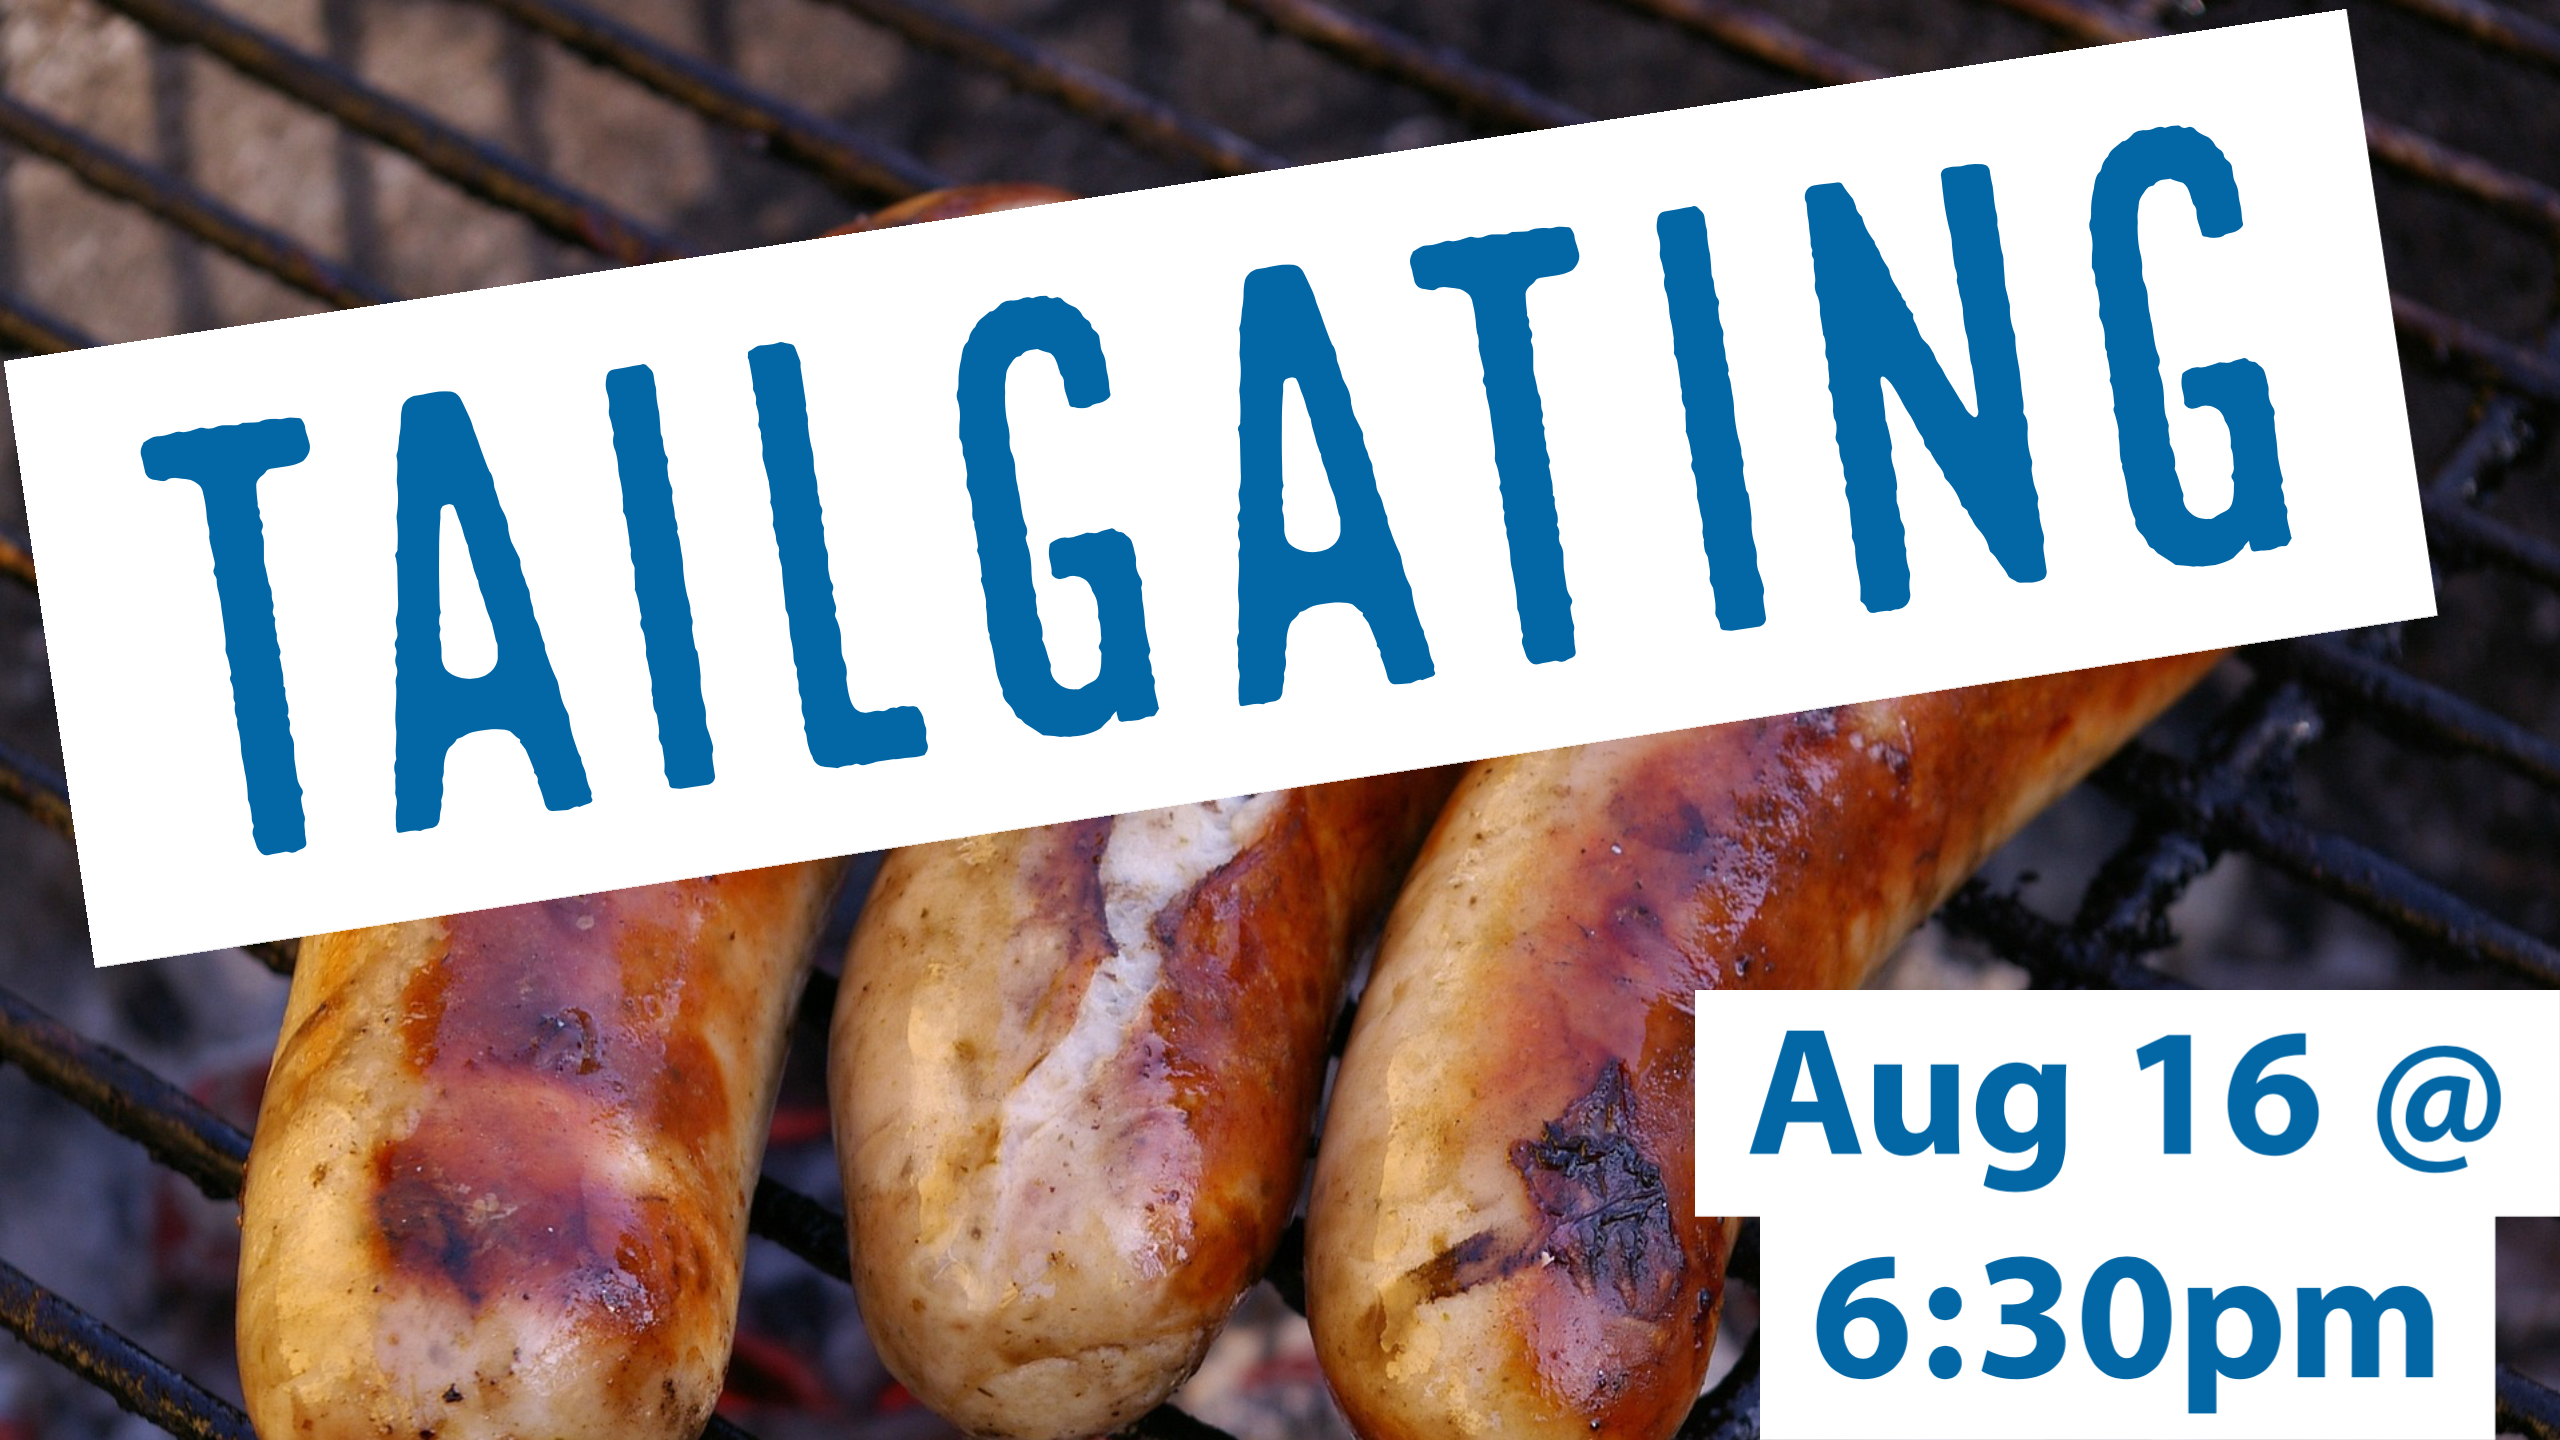 Tailgating Aug 16 image